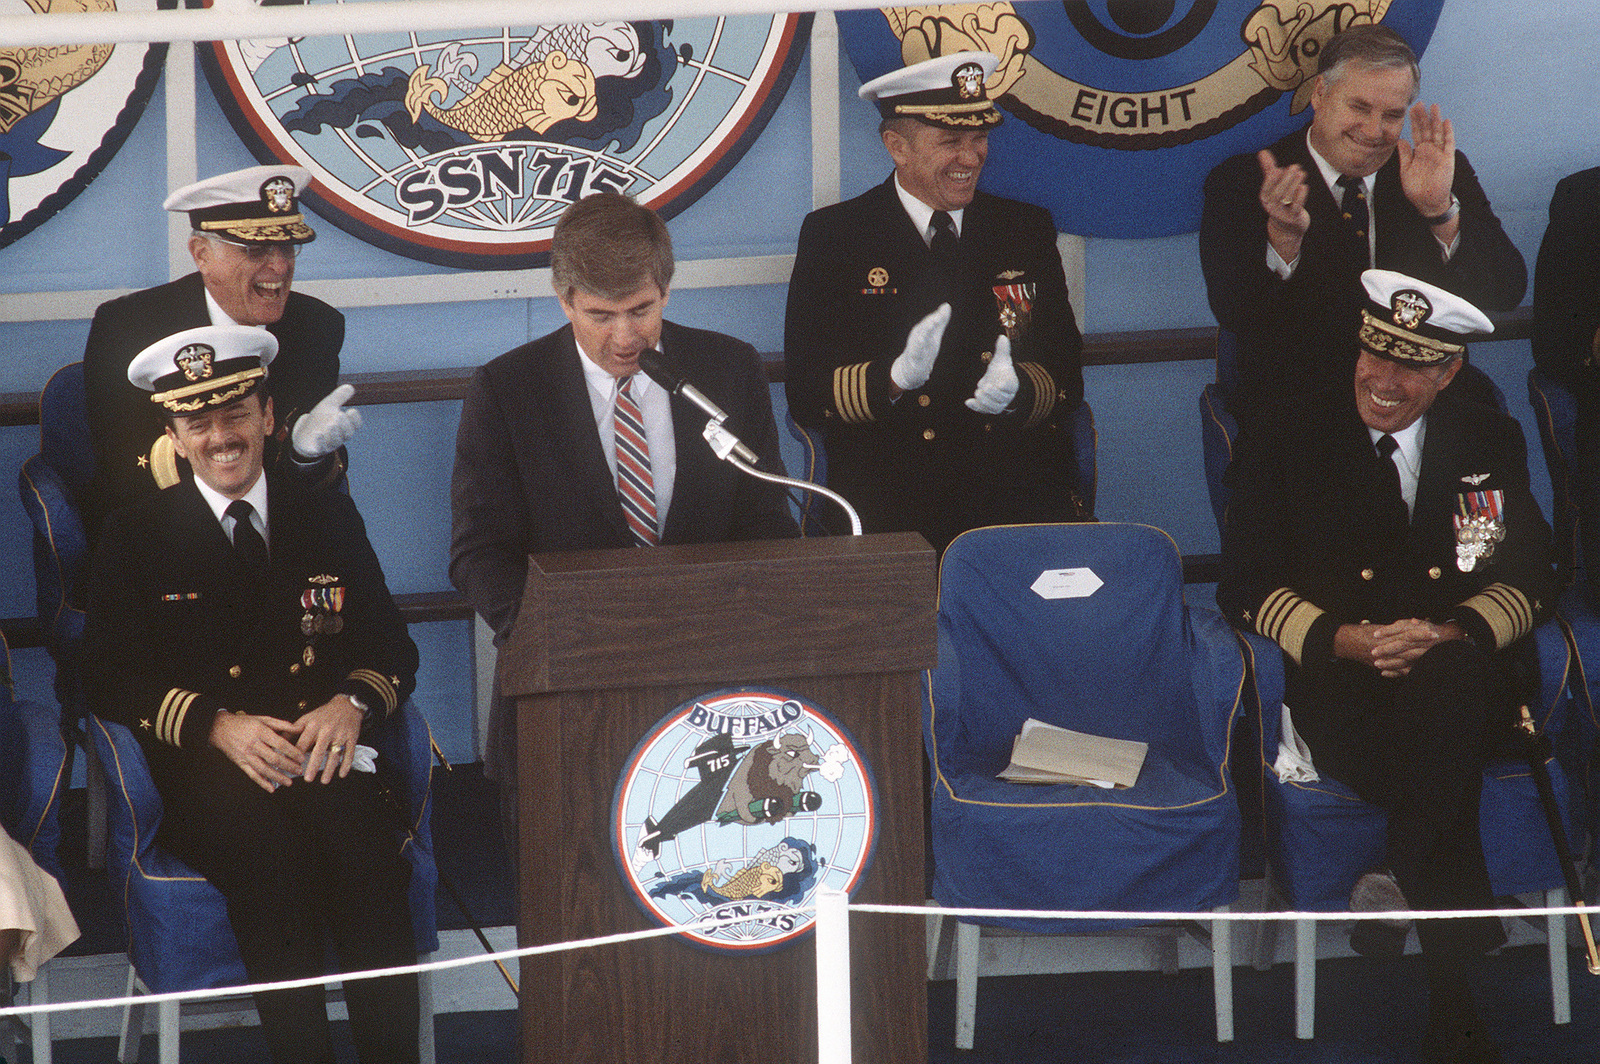 Representative Jack F. Kemp (Republican-New York) speaks during the commissioning ceremony for the nuclear-powered attack submarine USS BUFFALO (SSN 715). Admiral (ADM) Wesley L. McDonald, commander in chief, Atlantic and Atlantic Fleet, is seated on the right. On the left are Commander (CDR) G. Michael Hewitt, commanding officer of the BUFFALO, and Commodore Malcolm MacKinnon, supervisor of Shipbuilding, Conversion and Repair, Newport News Shipbuilding